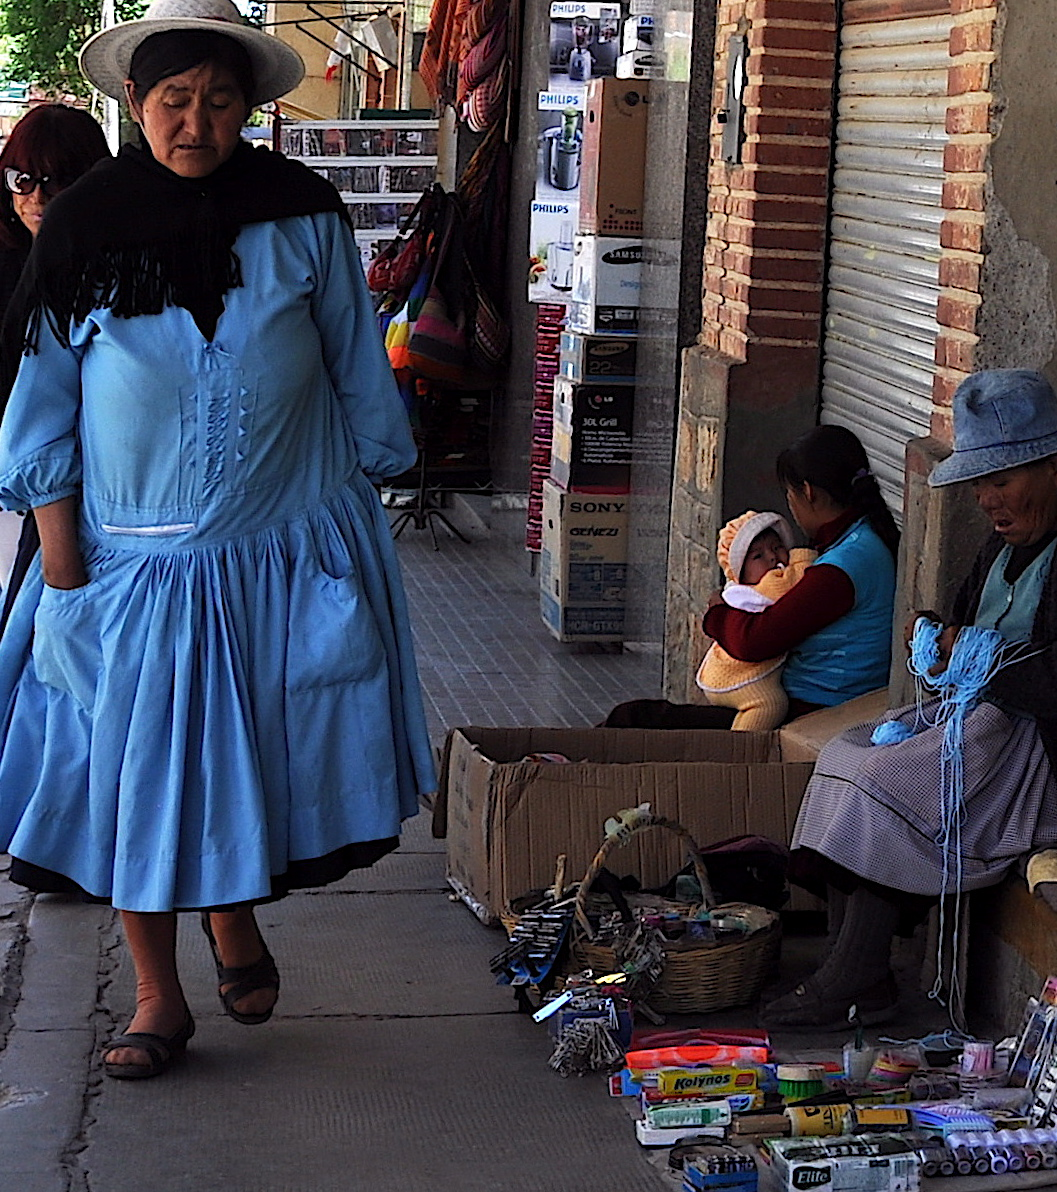 In the streets of Bolivia.